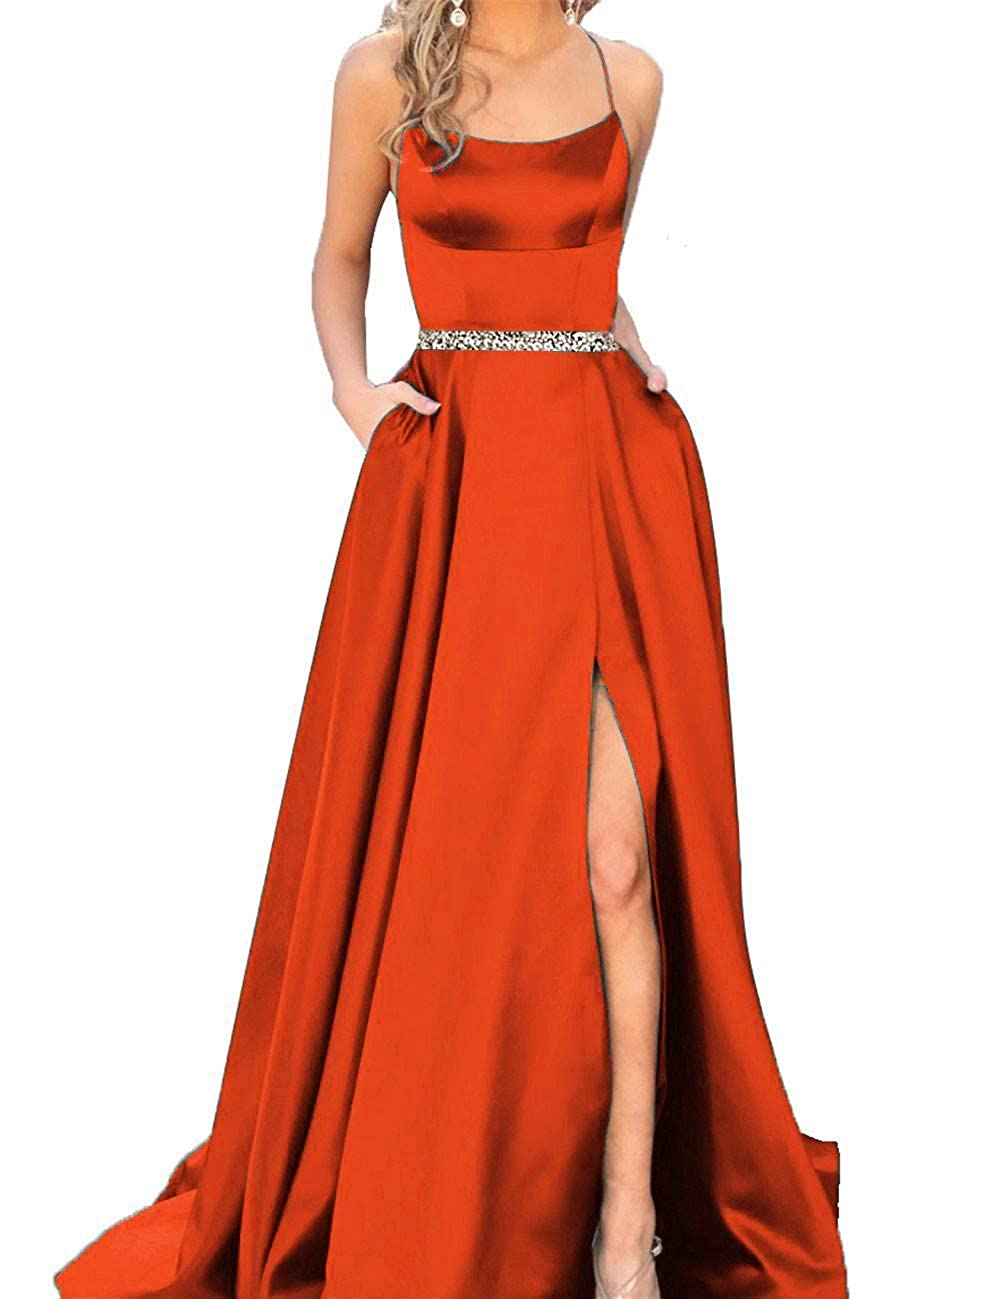 Fire orange With Beaded Fanciest Women's Halter Slit Satin Prom Dresses Long Backless Evening Formal Gowns